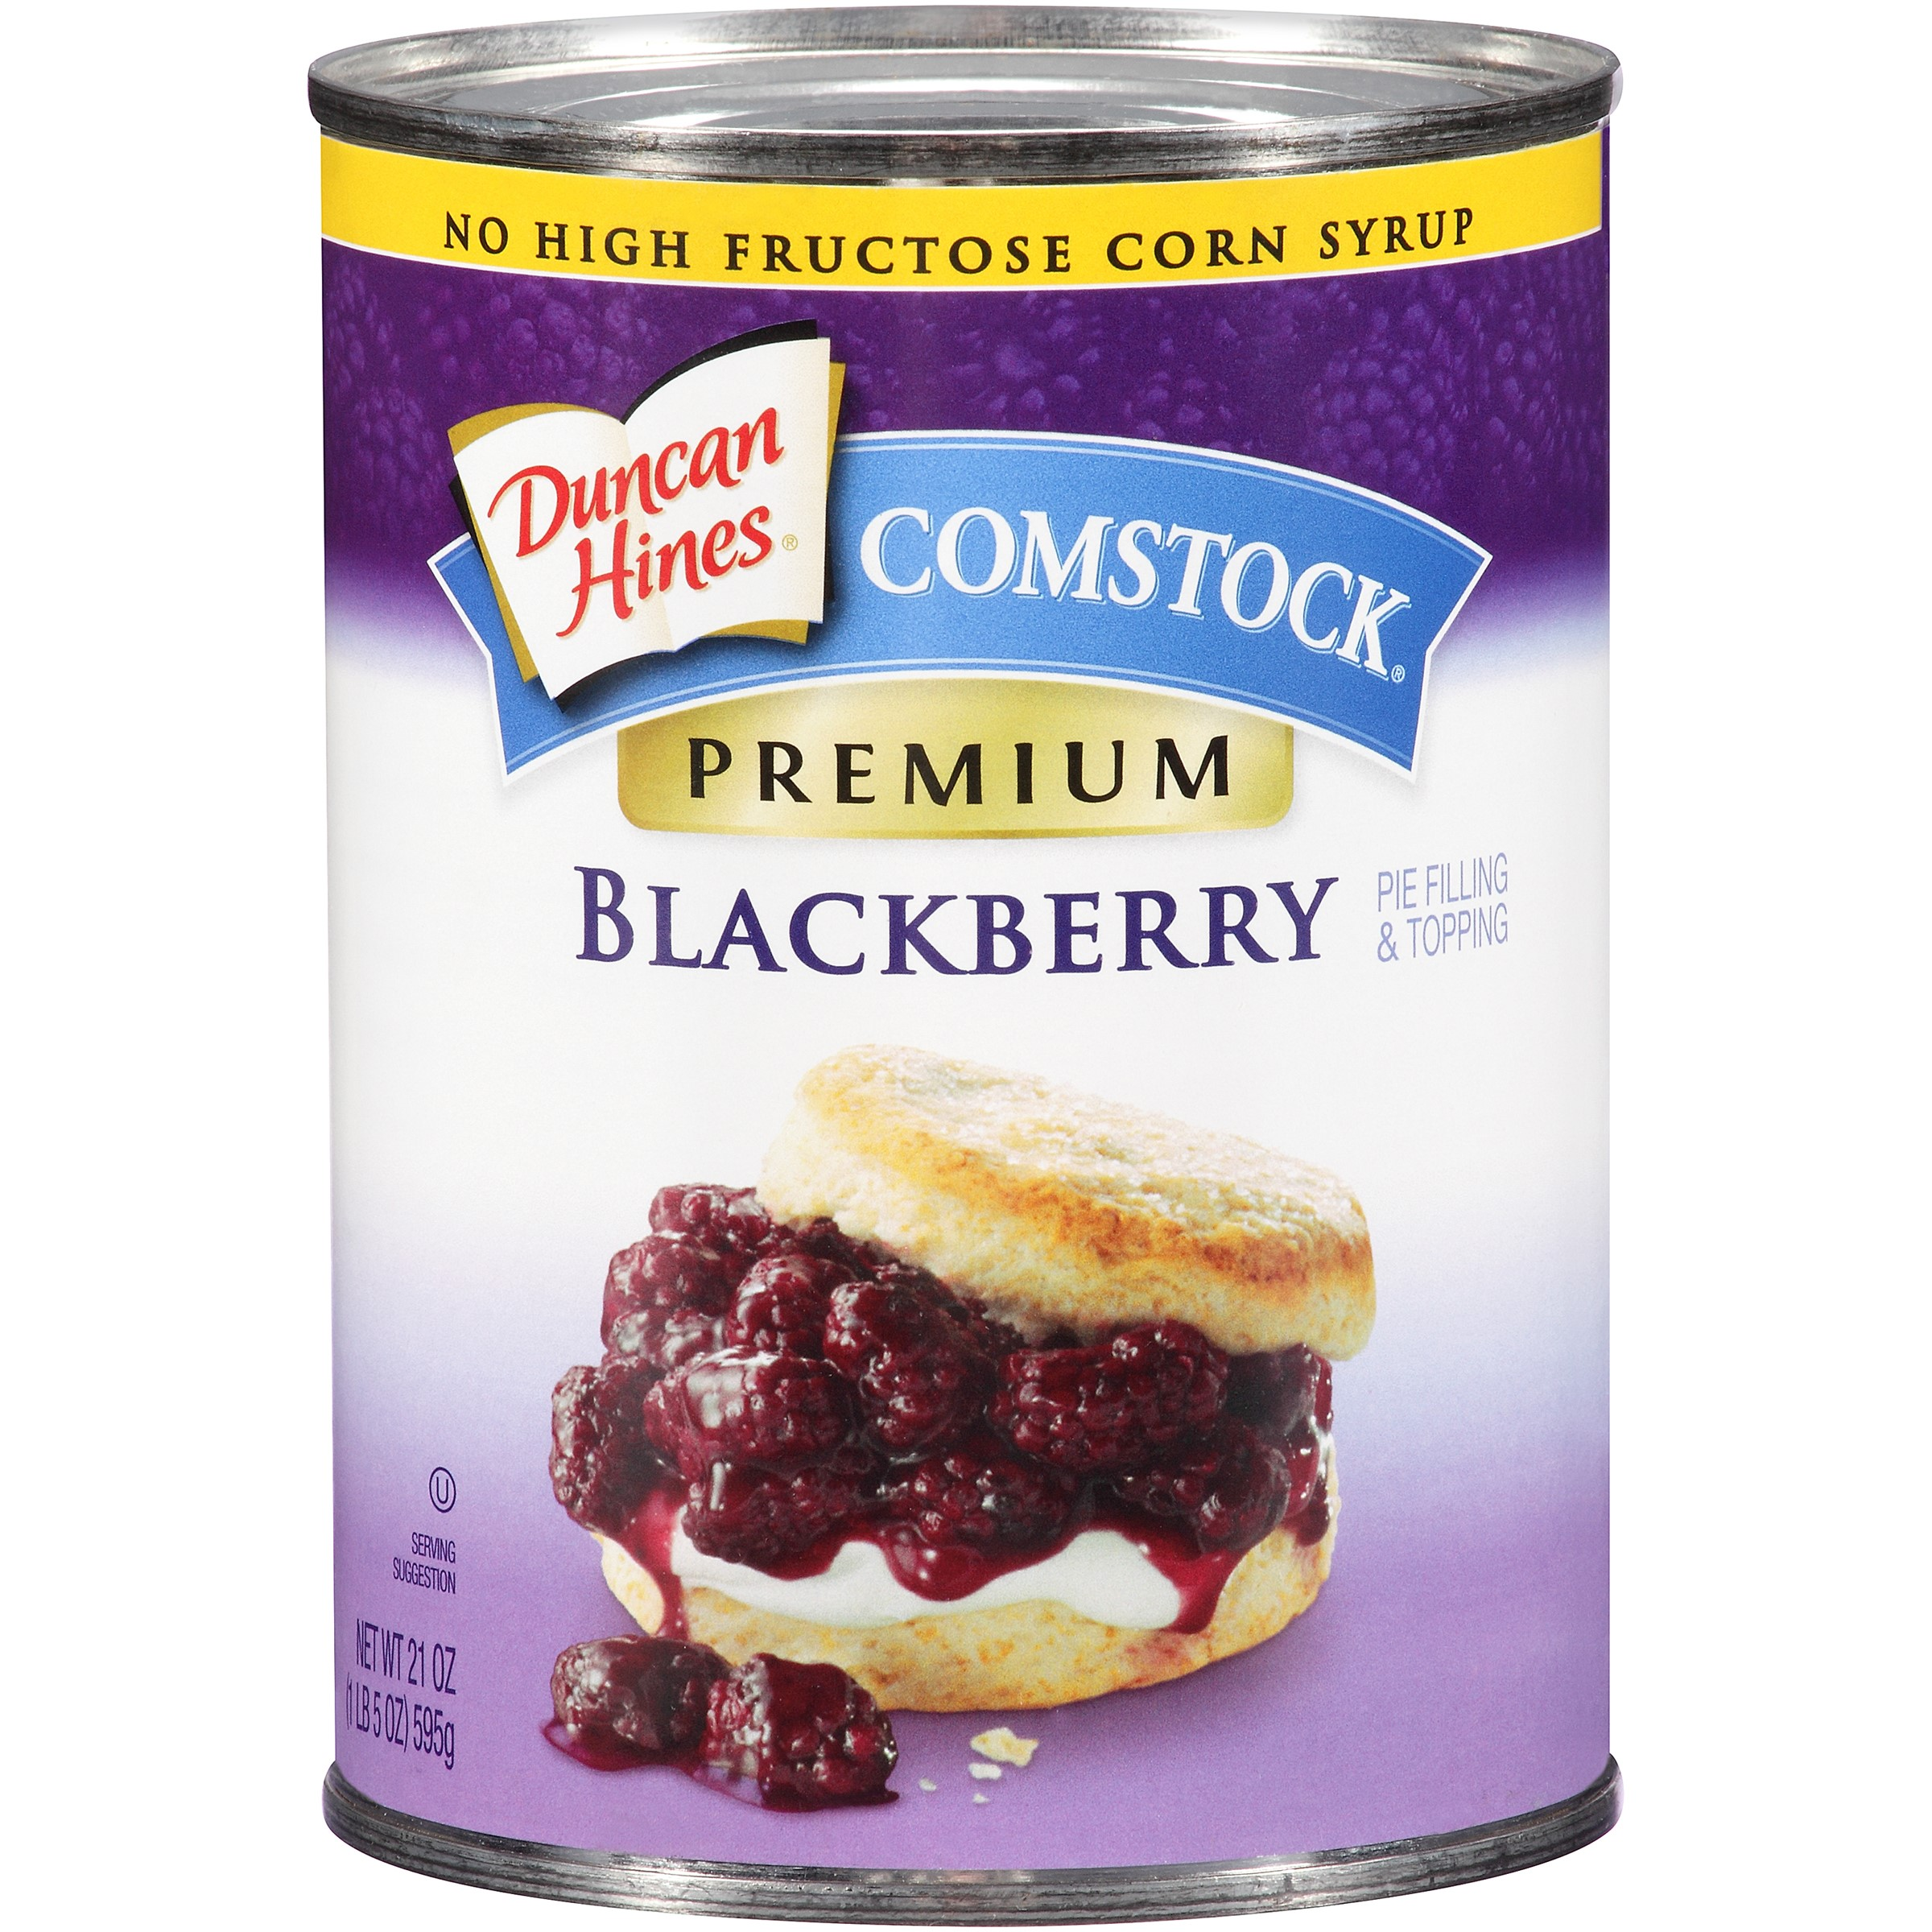 Duncan Hines Comstock Premium Blackberry Pie Filling & Topping, 21 Oz by Pinnacle Foods